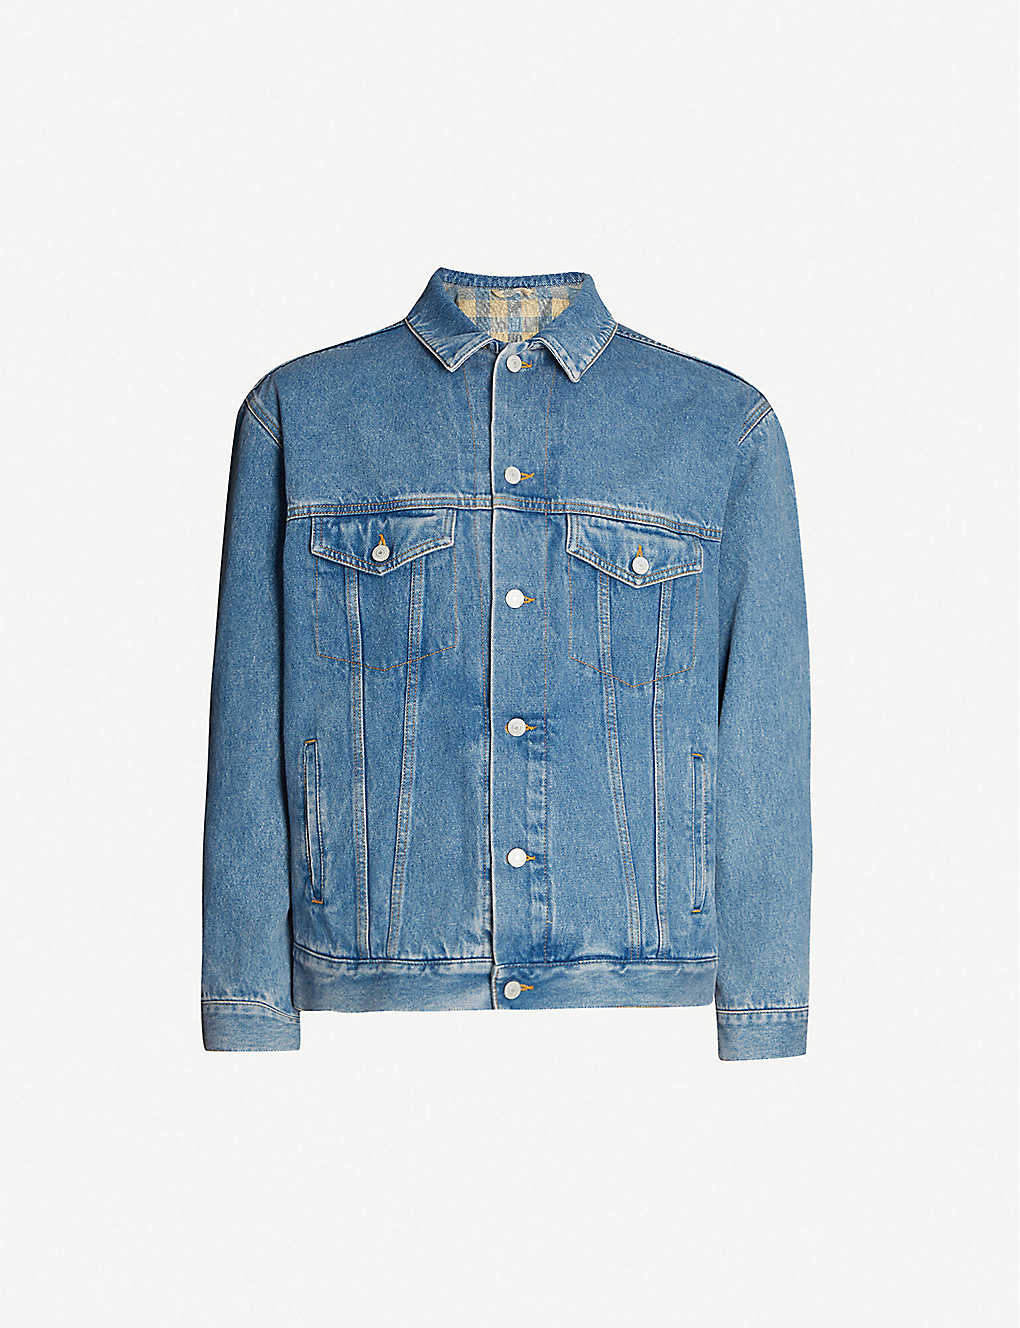 c6db49d70 GUCCI - Band-embroidered denim jacket | Selfridges.com